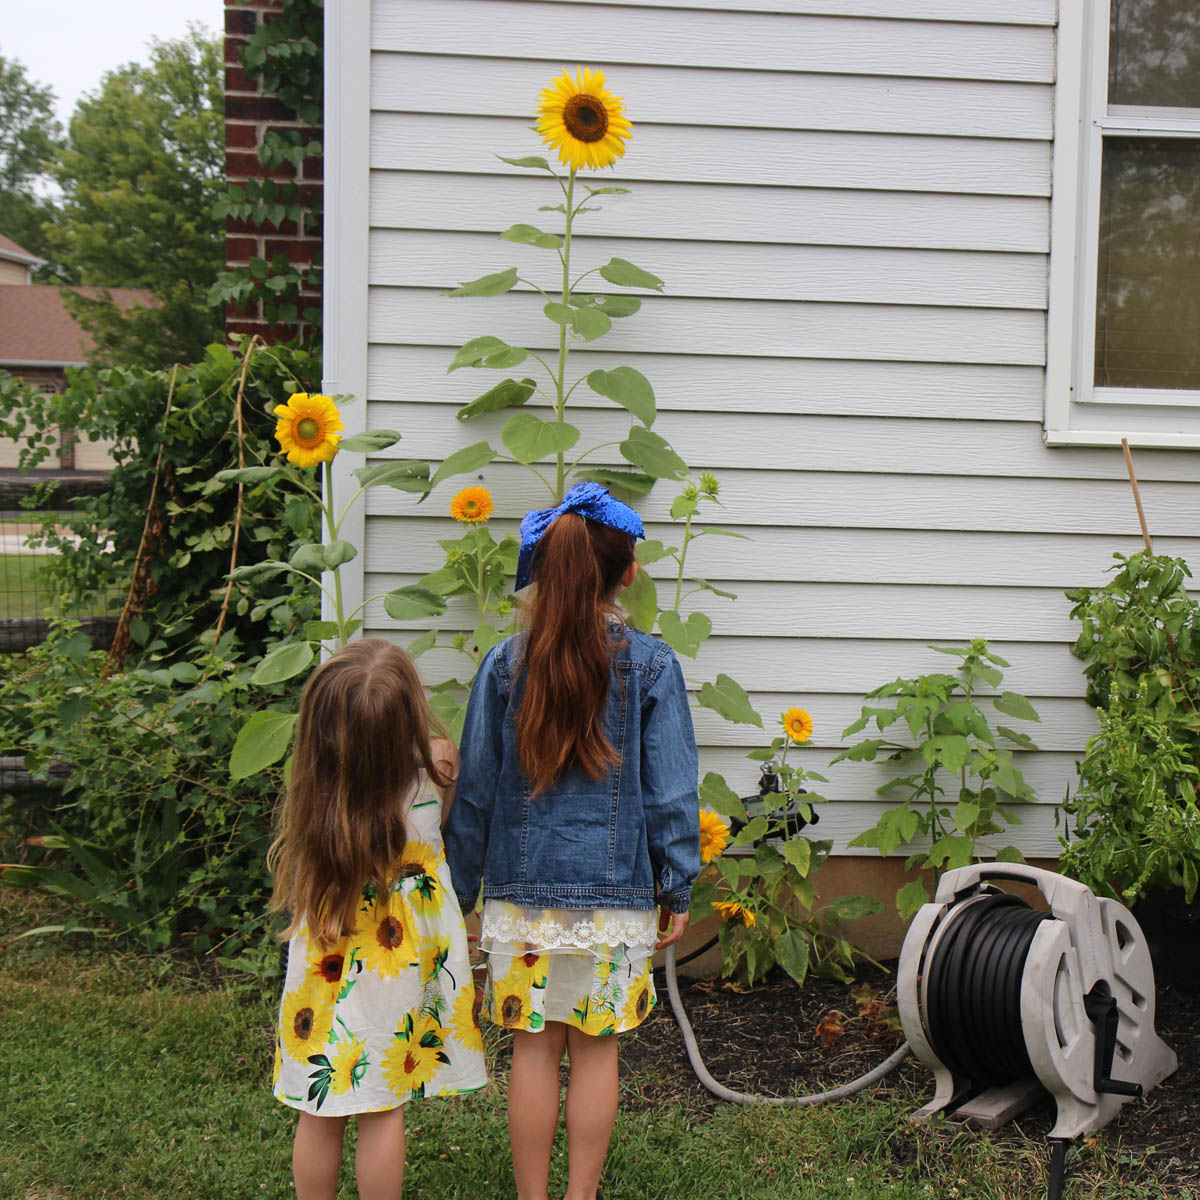 A Sunflower Dress makes the perfect garden inspired outfit for so many delightful occasions. Sweet sisters stand staring at flowers in sunflower dresses.